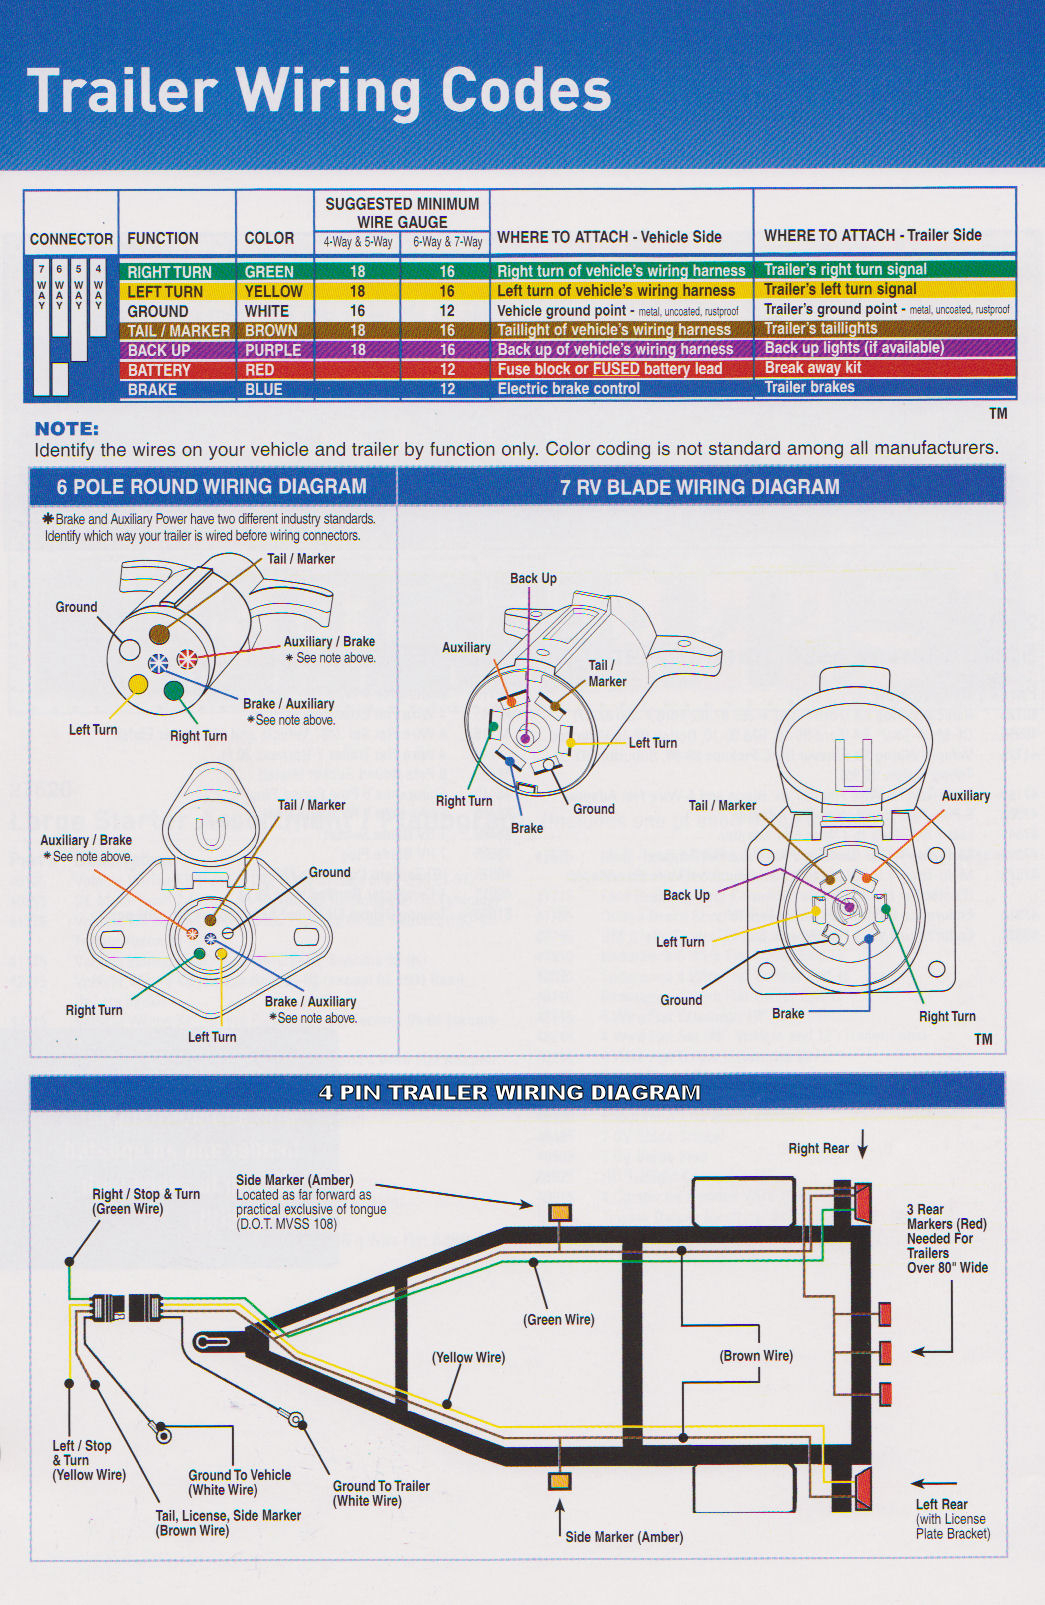 Trailer Wiring Diagram 4 Flat Manual Guide